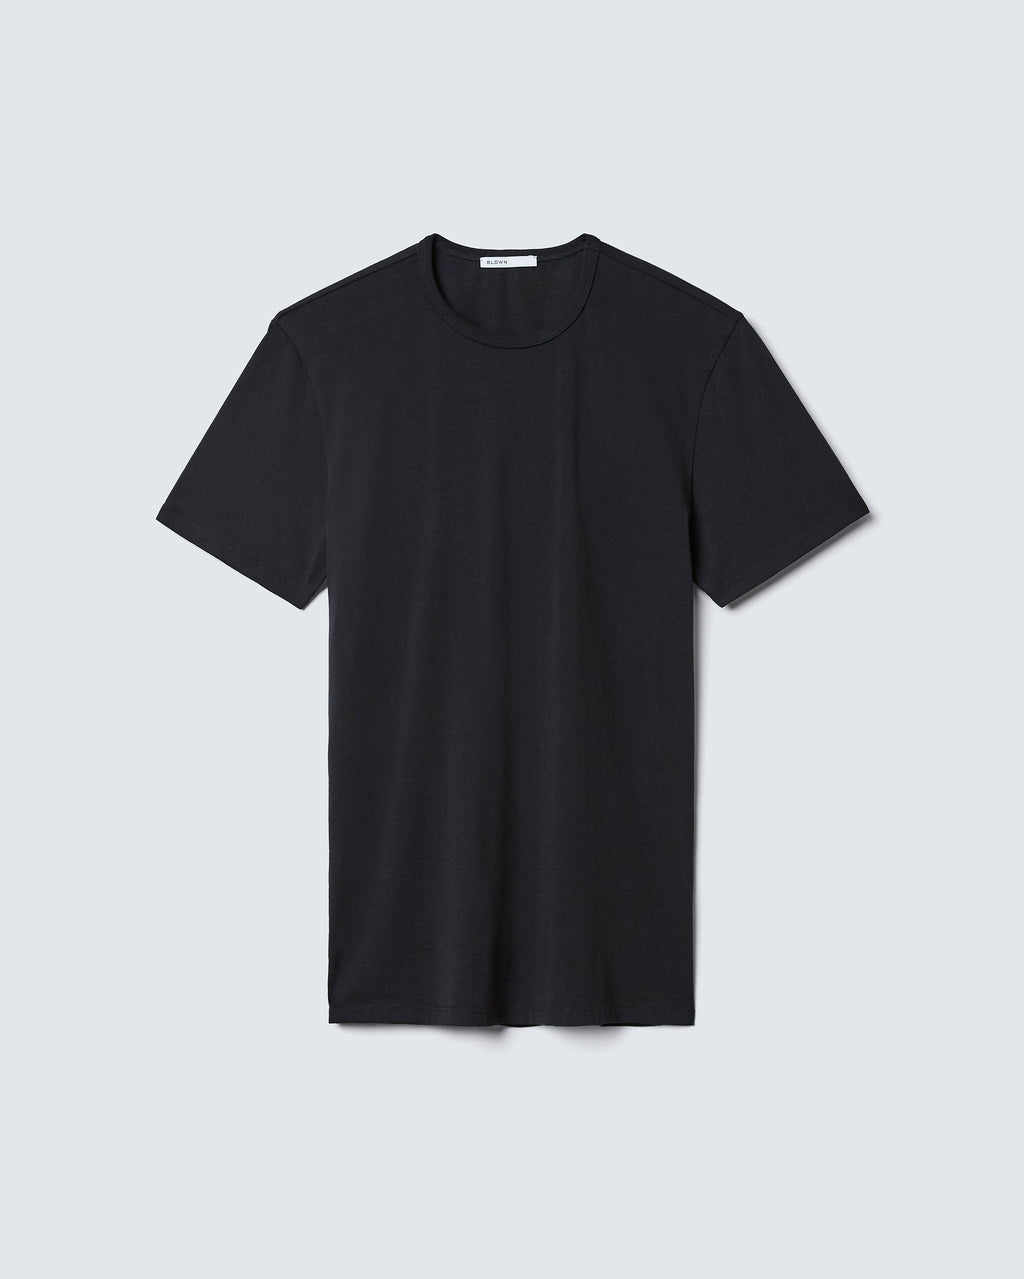 The Modern Slim Tee in Black